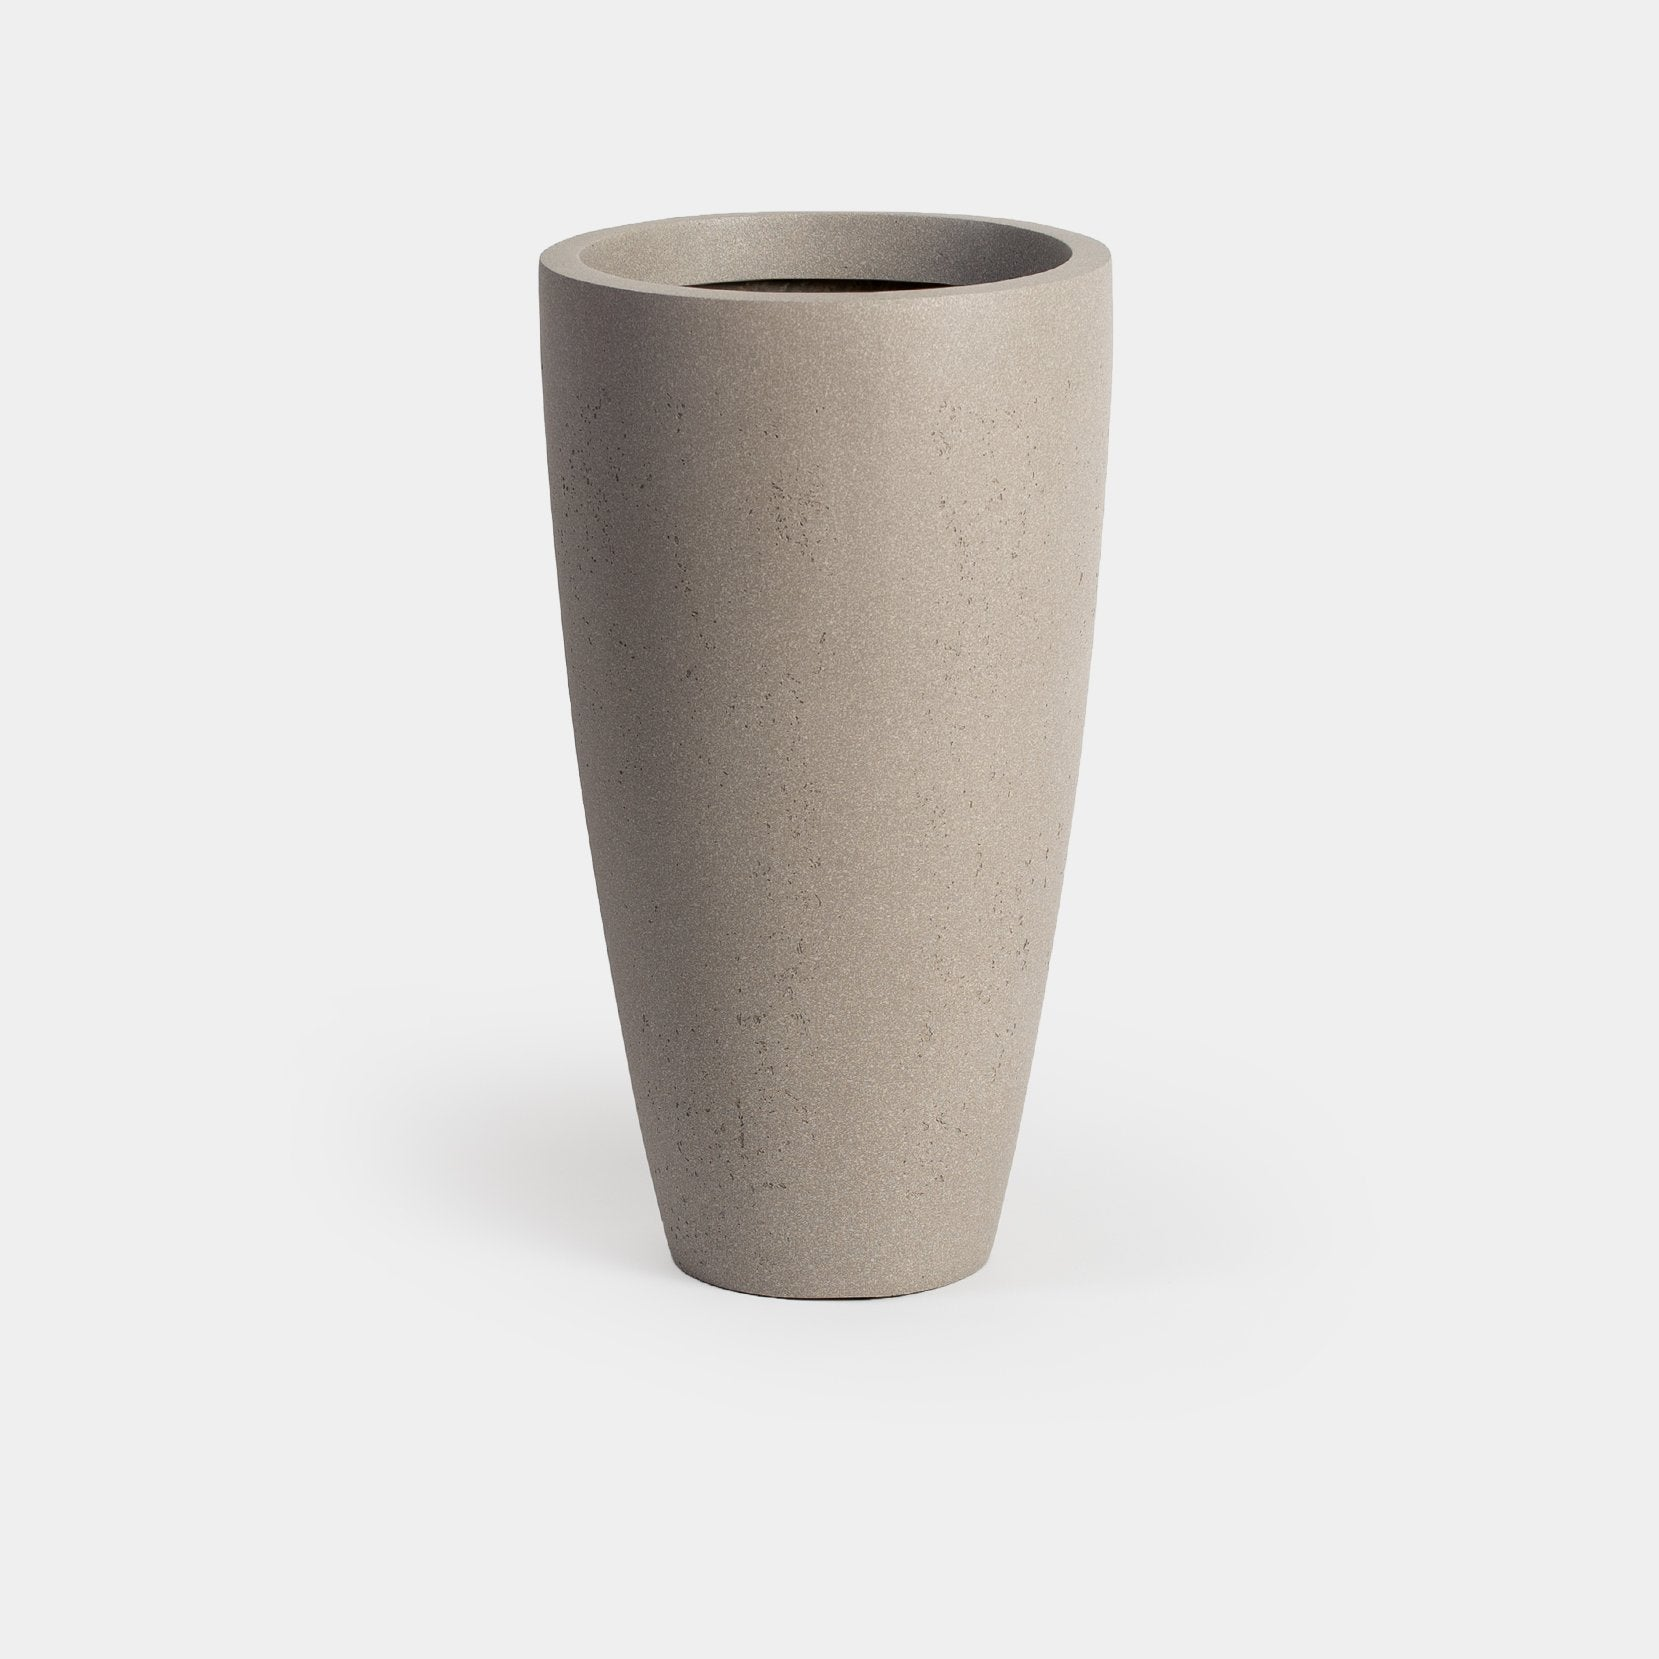 Stone grey tall tapered large planter